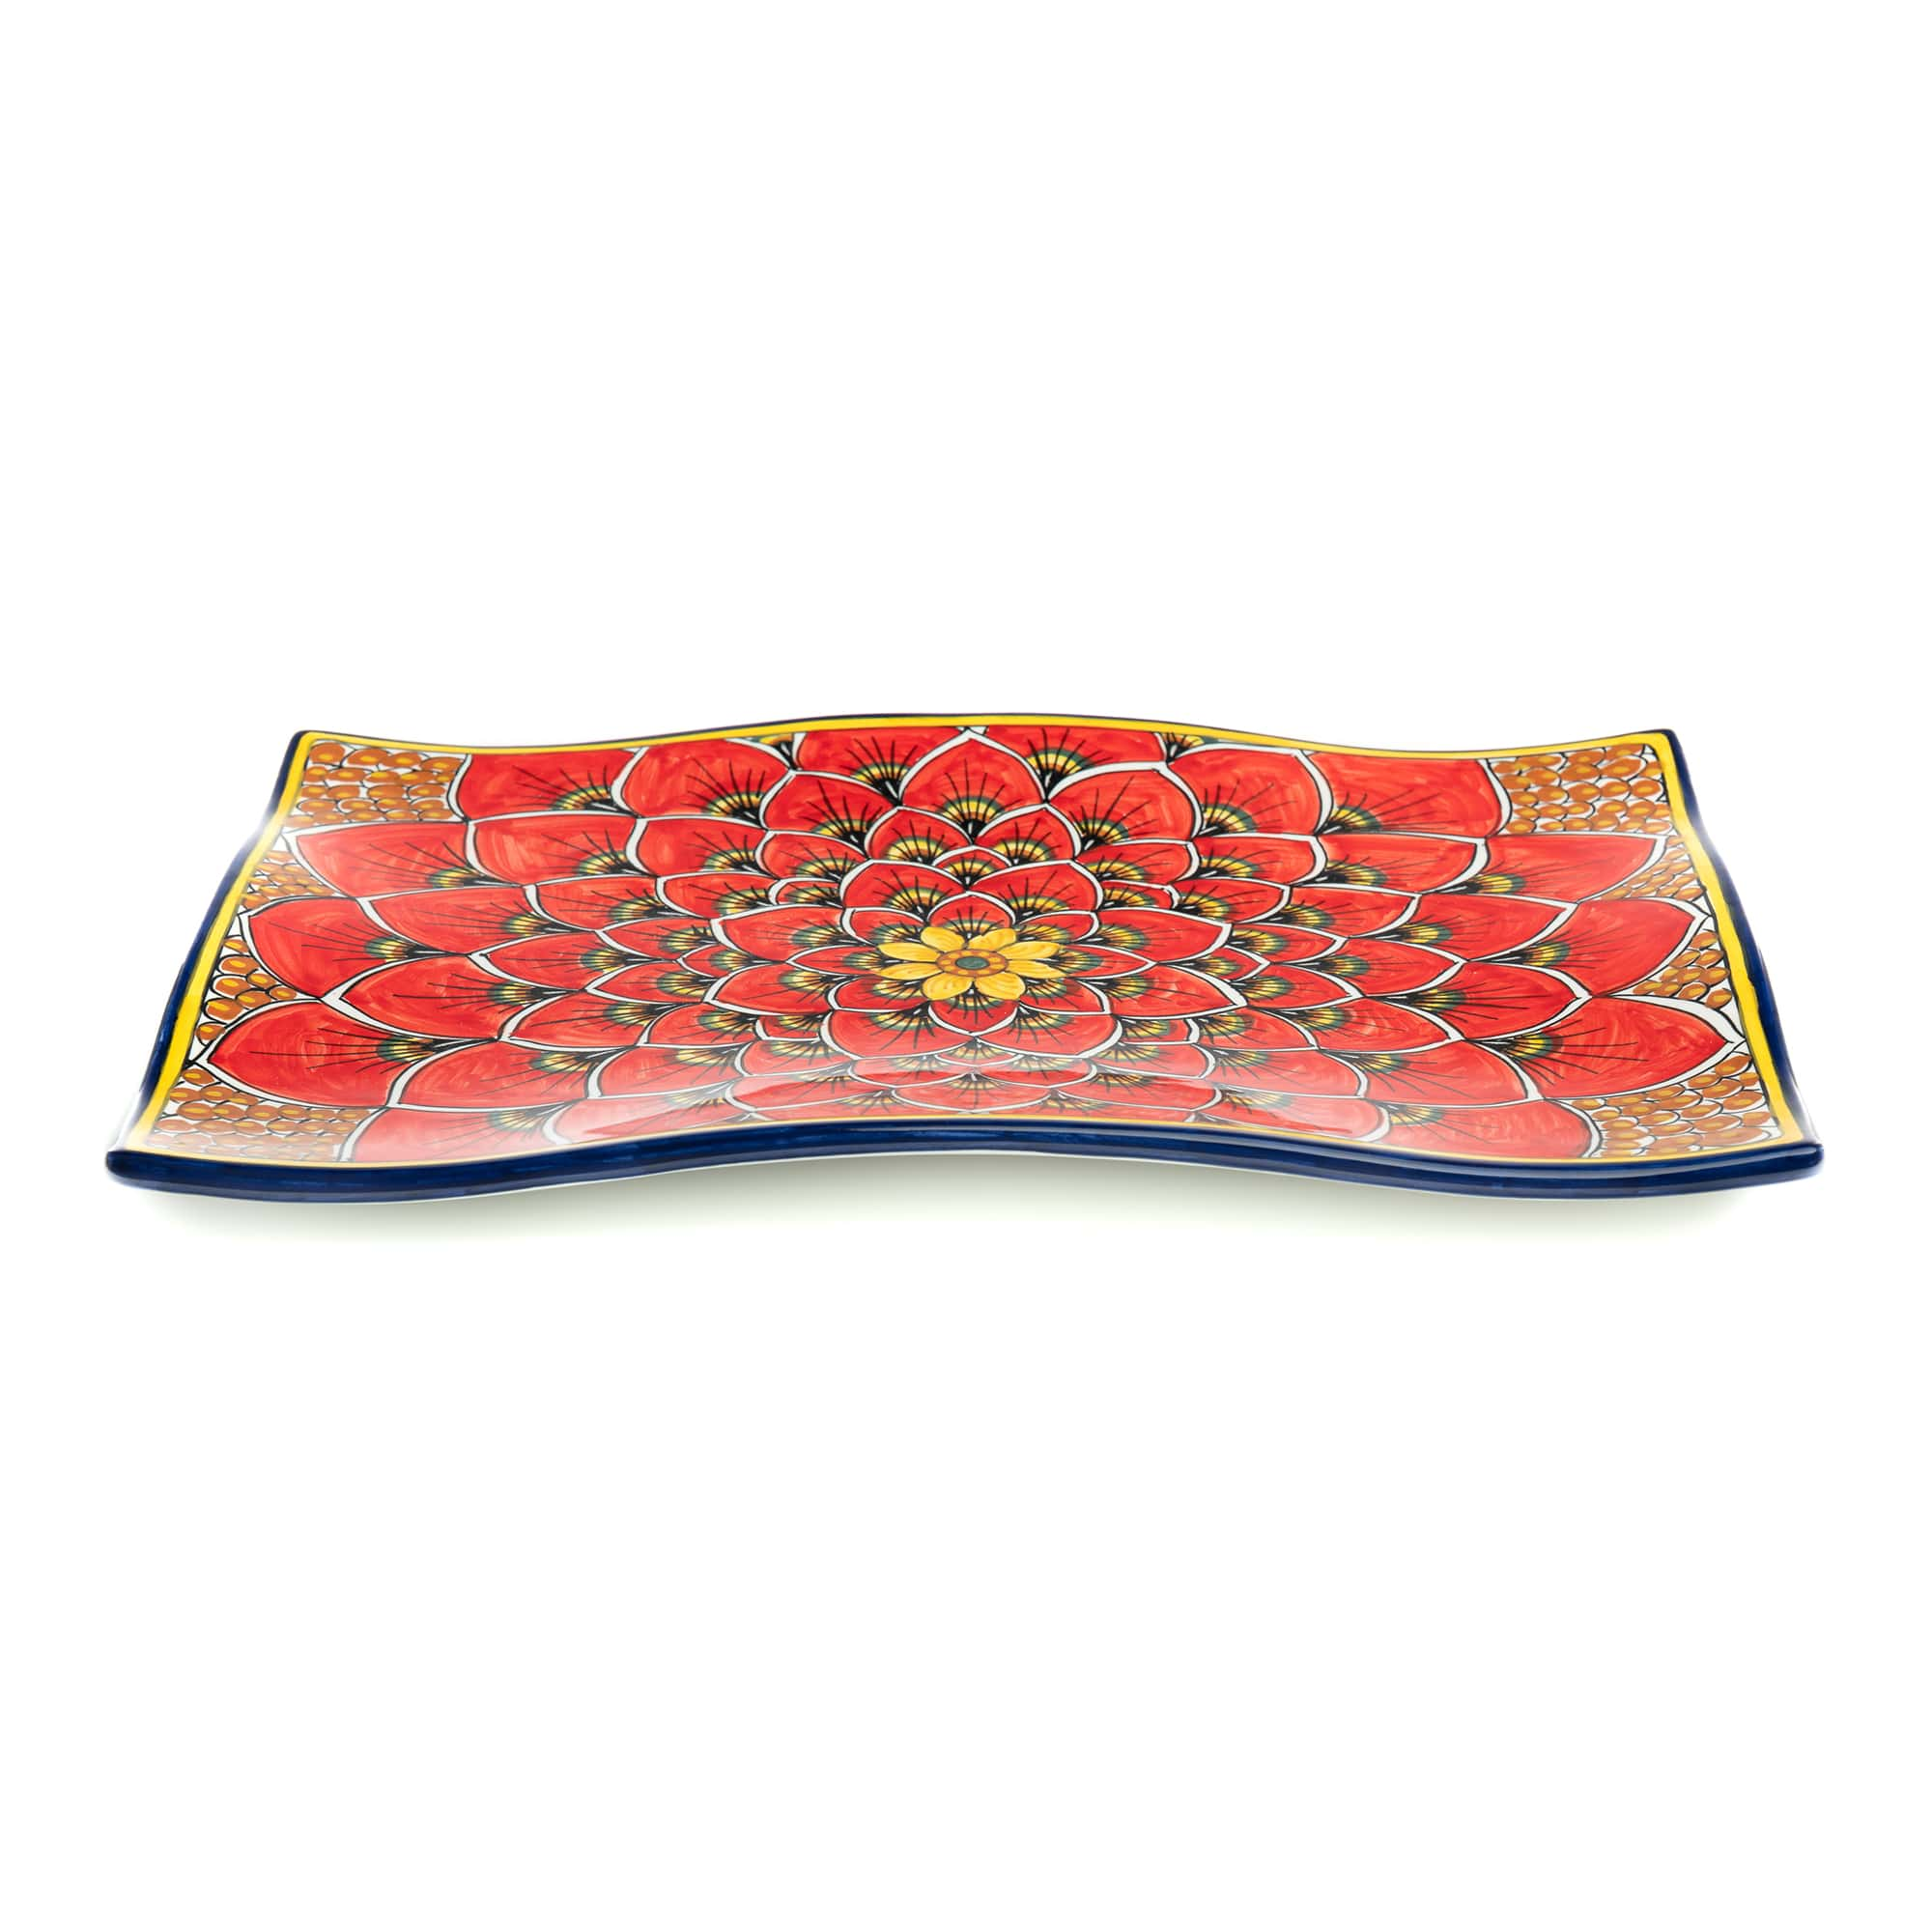 Geribi Wavy Platter (PG04) Red Peacock Design